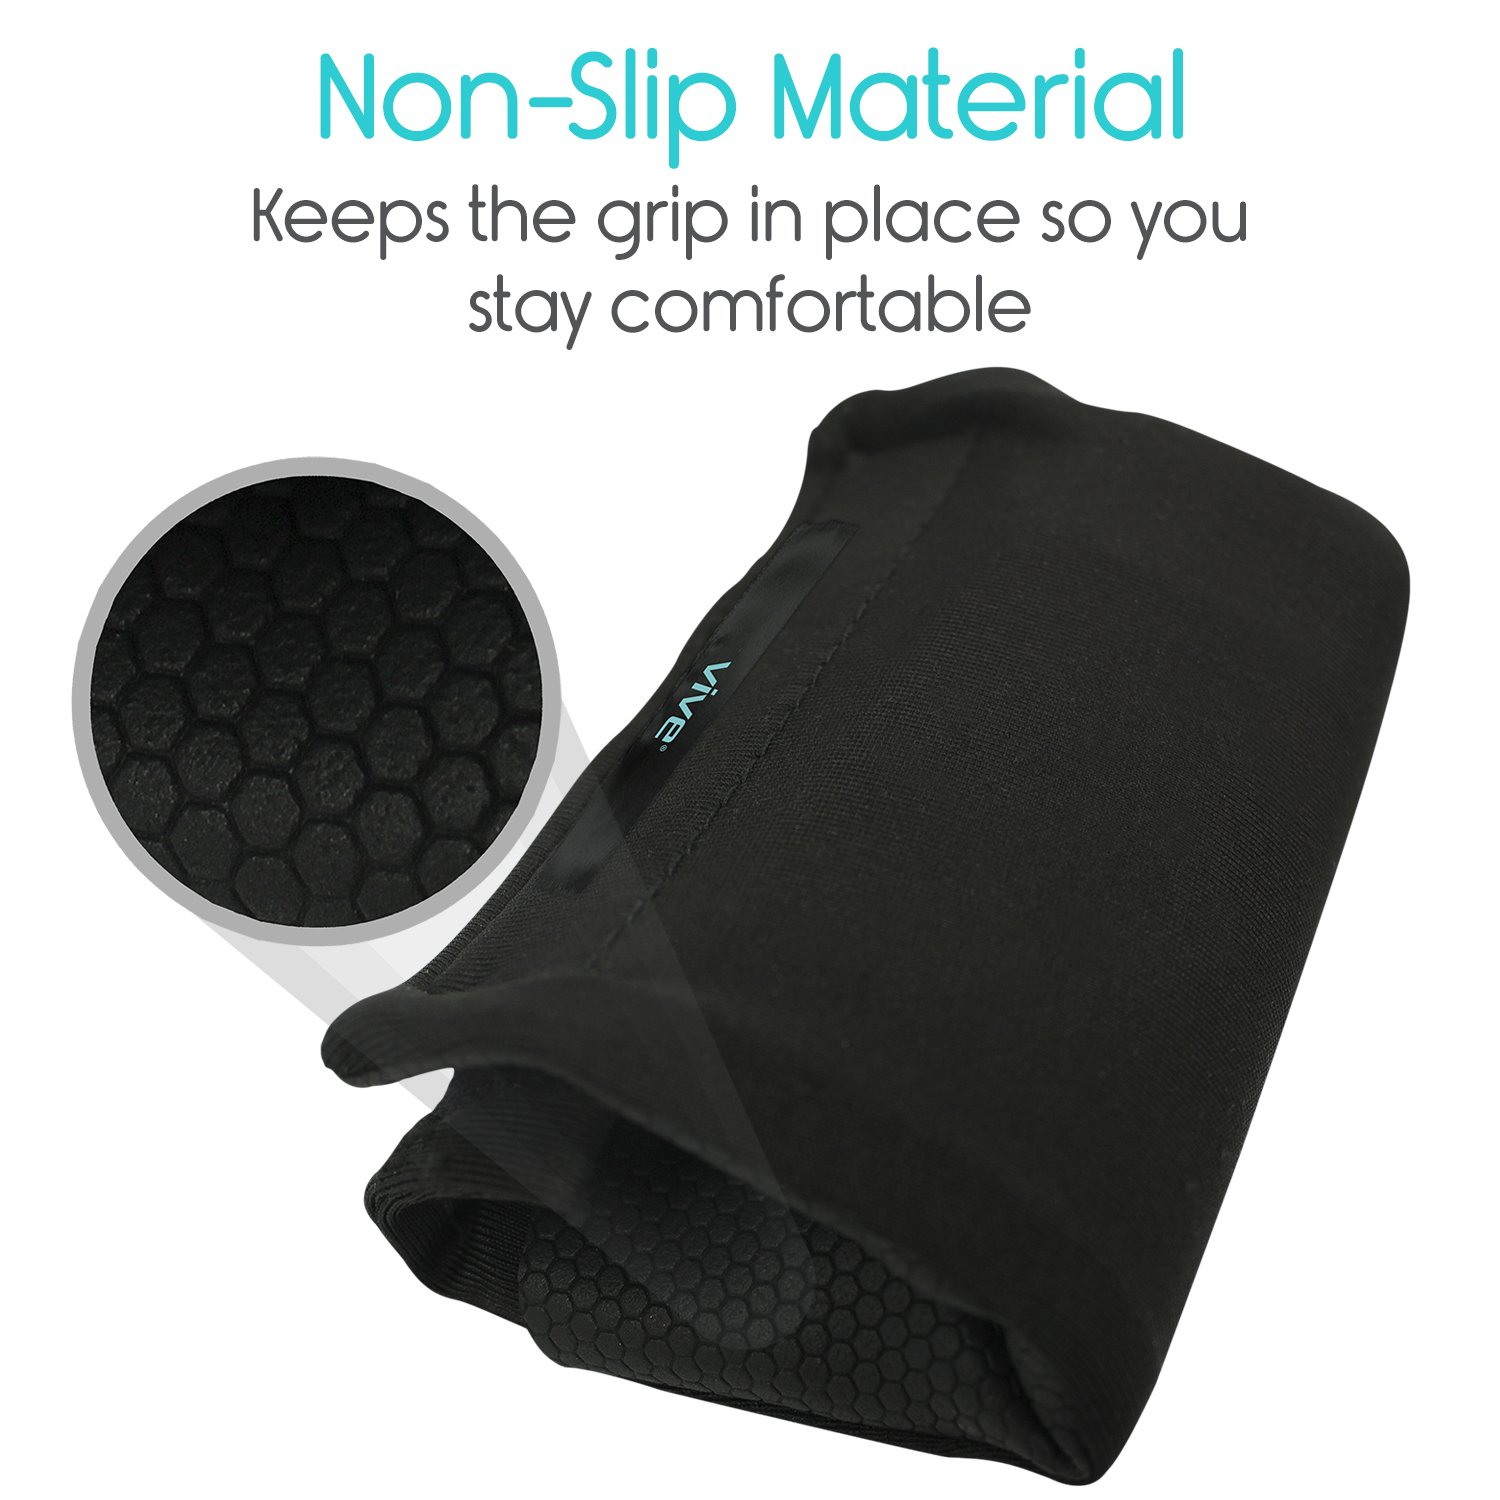 Vive Walker Padded Hand Grip Covers- Soft Cushion Padding Medical Accessories for Folding Rolling Walker, Rollator Handle, Senior, Elderly Grippers - Crutch Handle Pads - Mobility Aid Hand Cushion by Vive (Image #5)